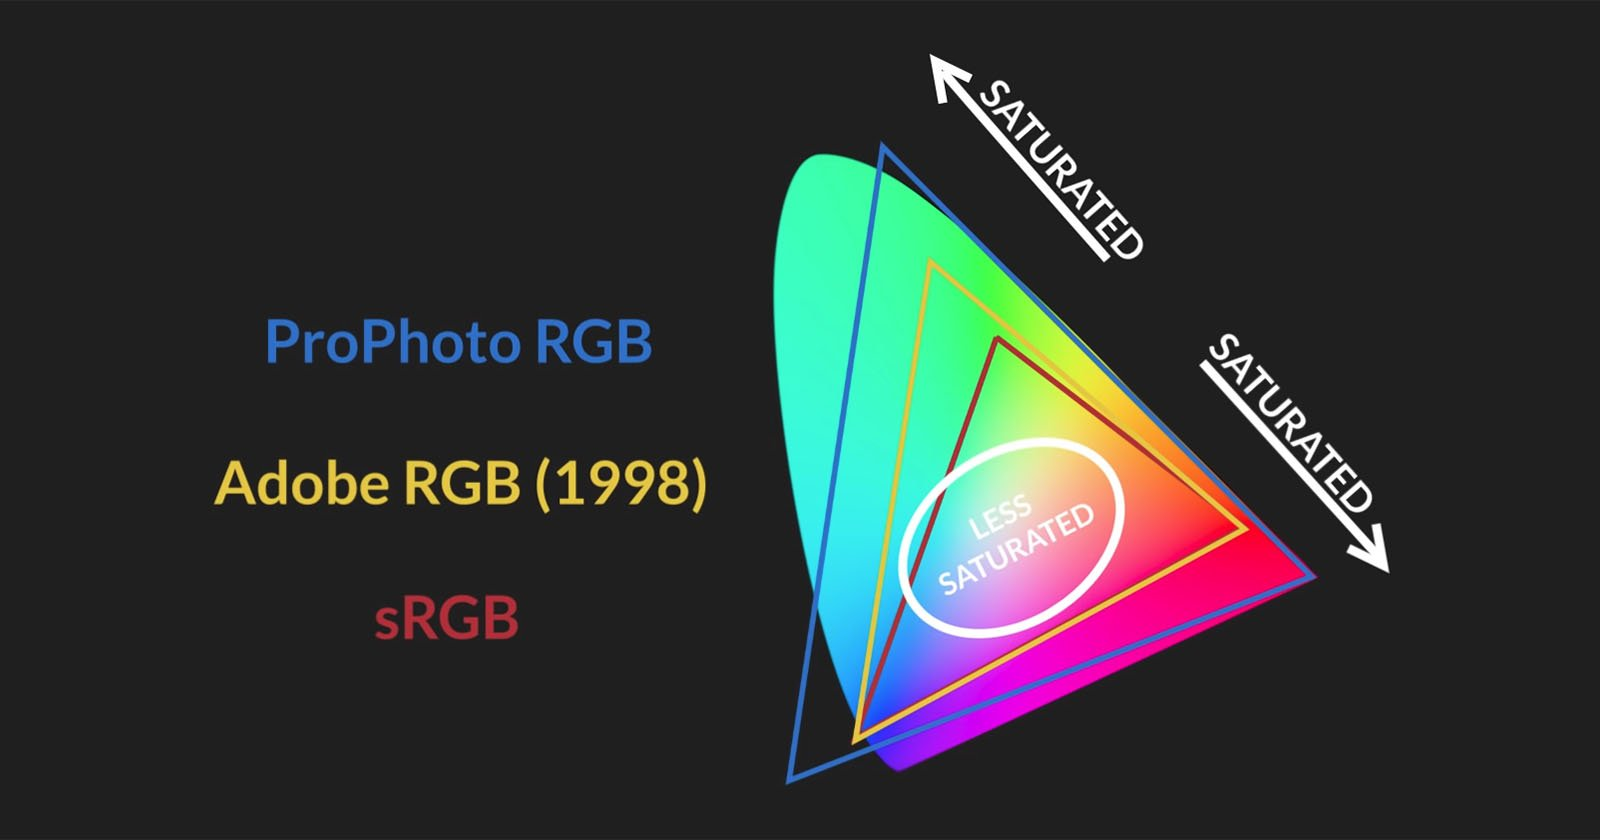 Srgb Vs Adobe Rgb Vs Prophoto Rgb Color Spaces Explained